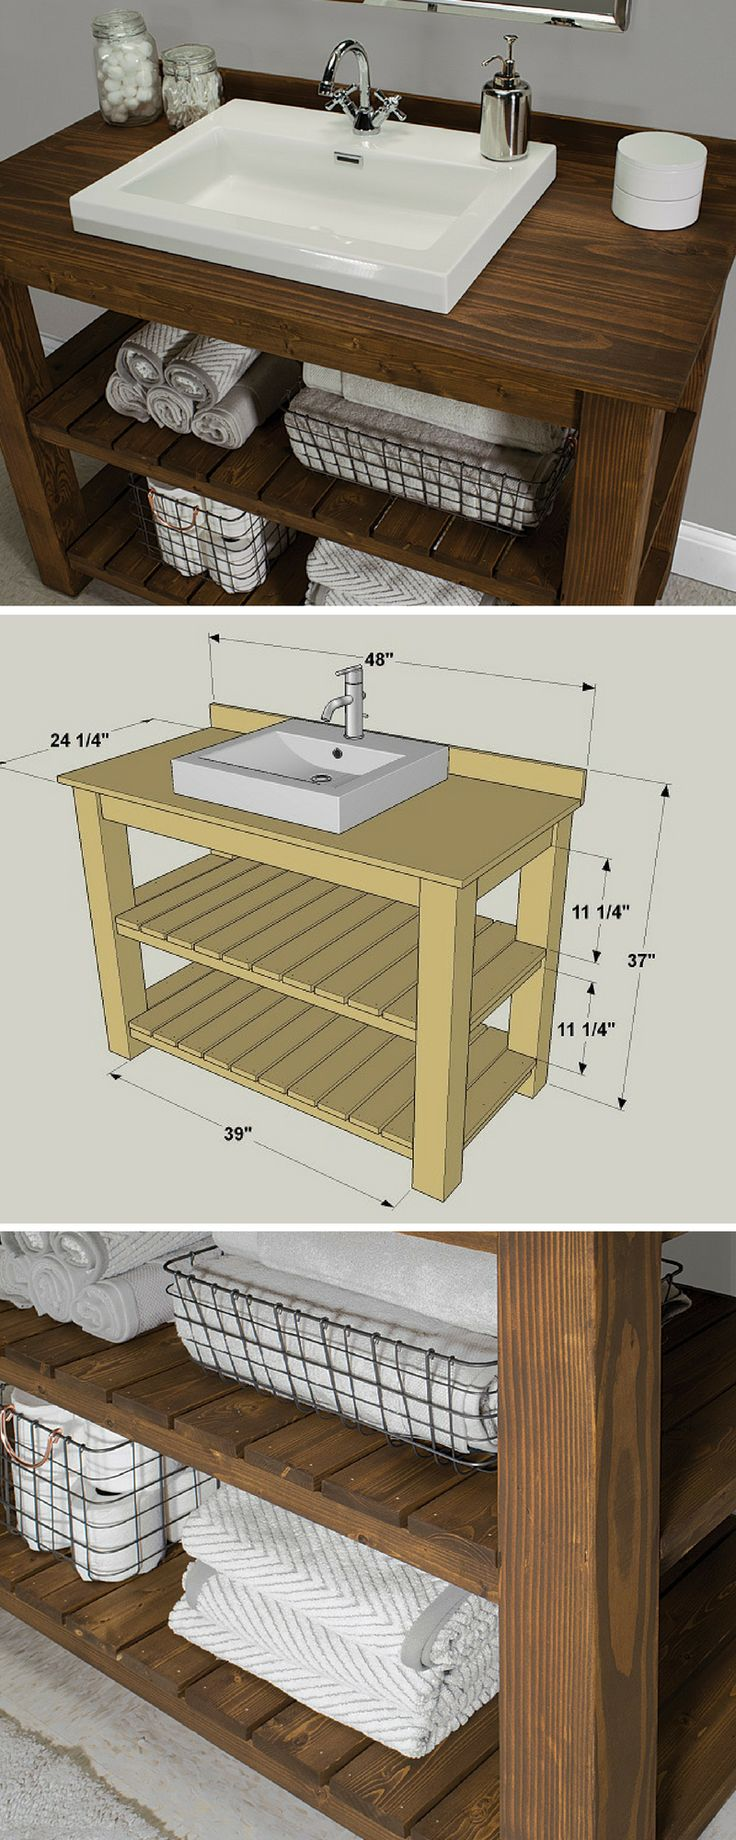 17 best ideas about farmhouse bathroom sink on pinterest